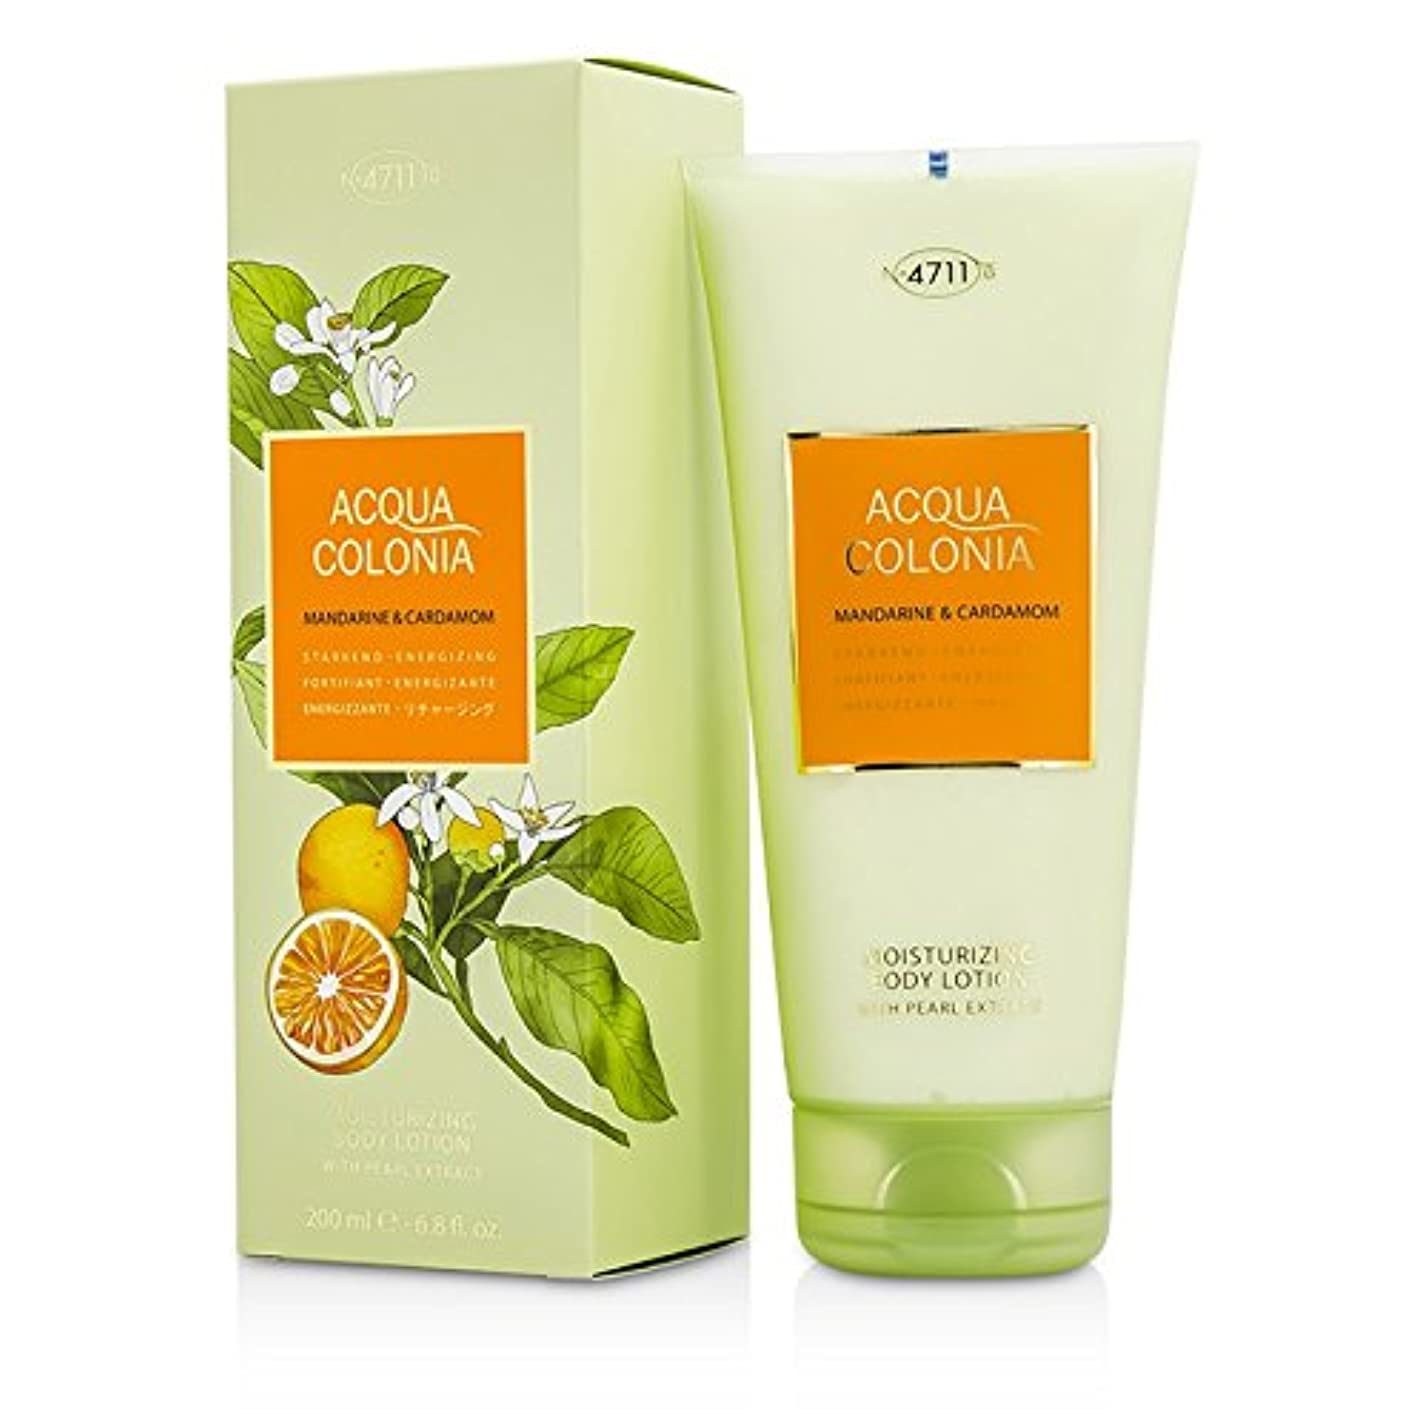 浮く利益達成可能4711 Acqua Colonia Mandarine & Cardamom Moisturizing Body Lotion 200ml/6.8oz並行輸入品